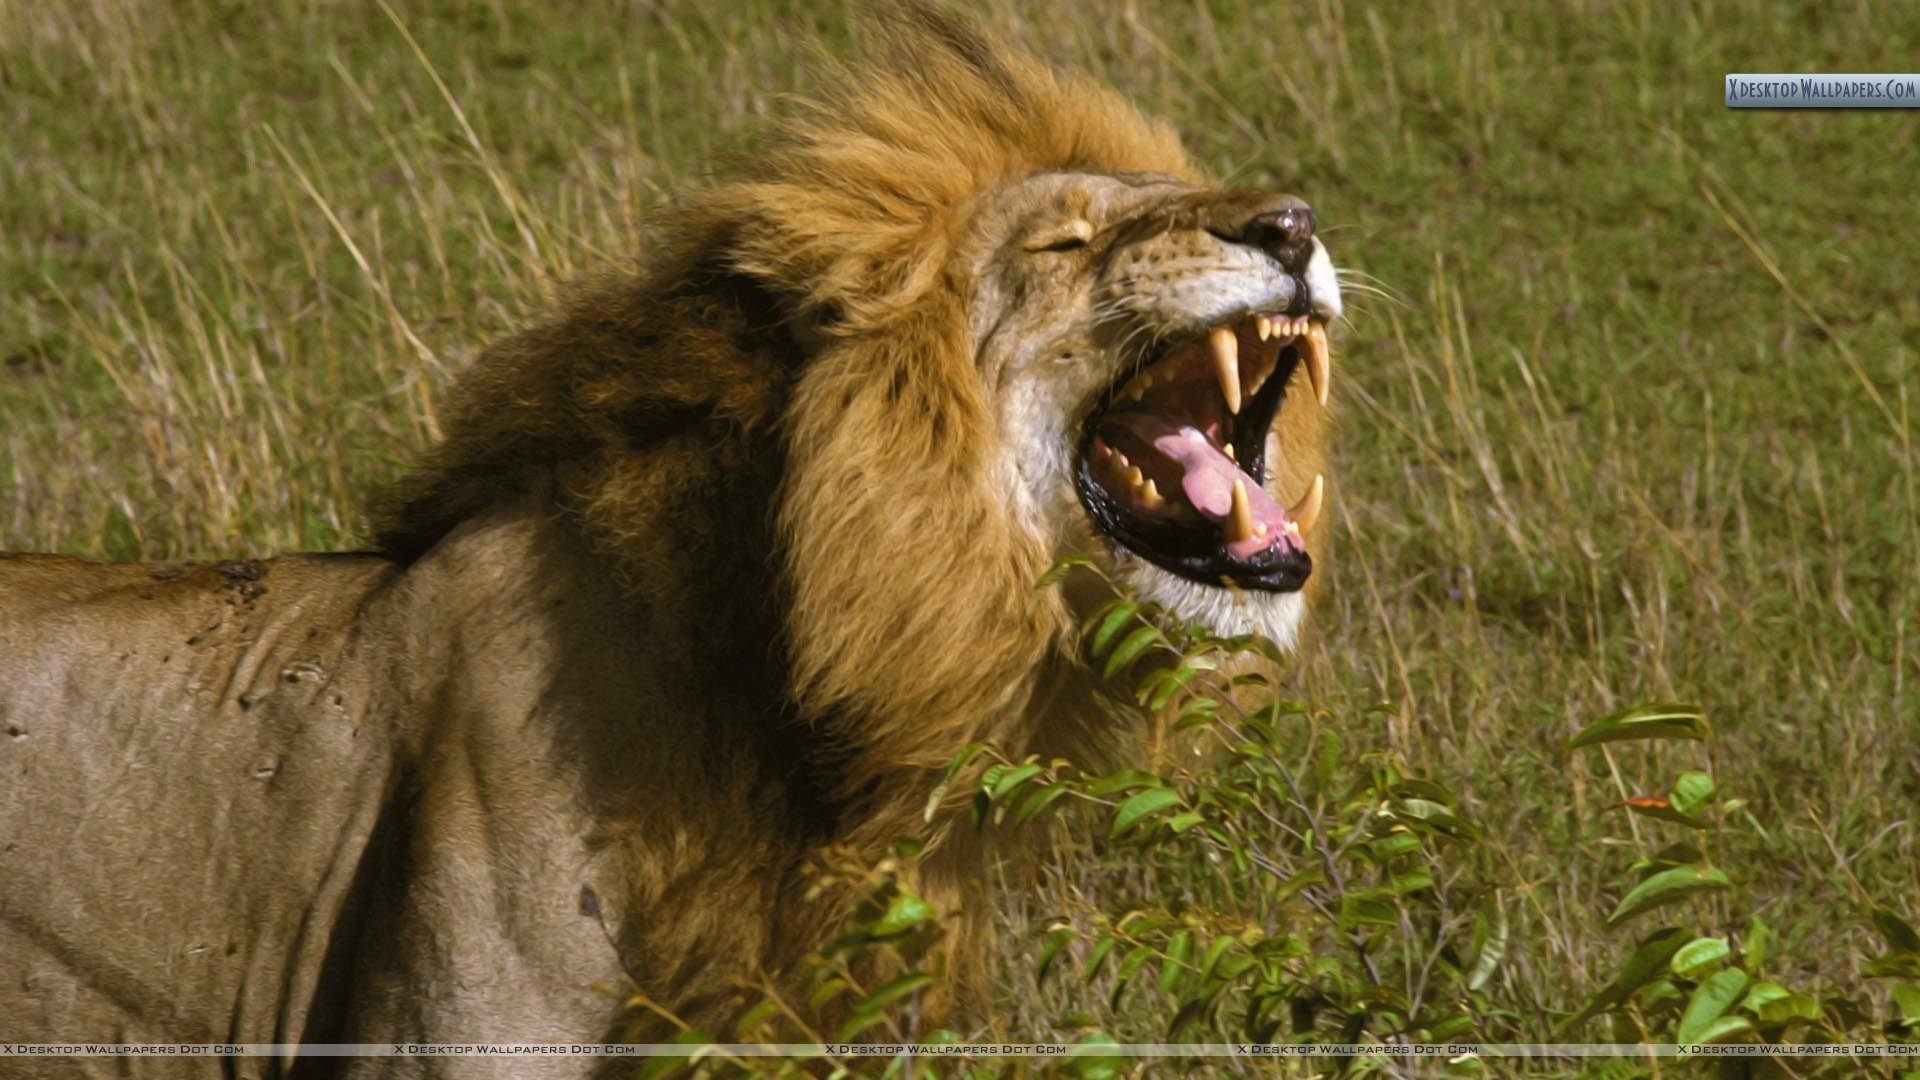 the king of smiles, african lion, tanzania wallpaper